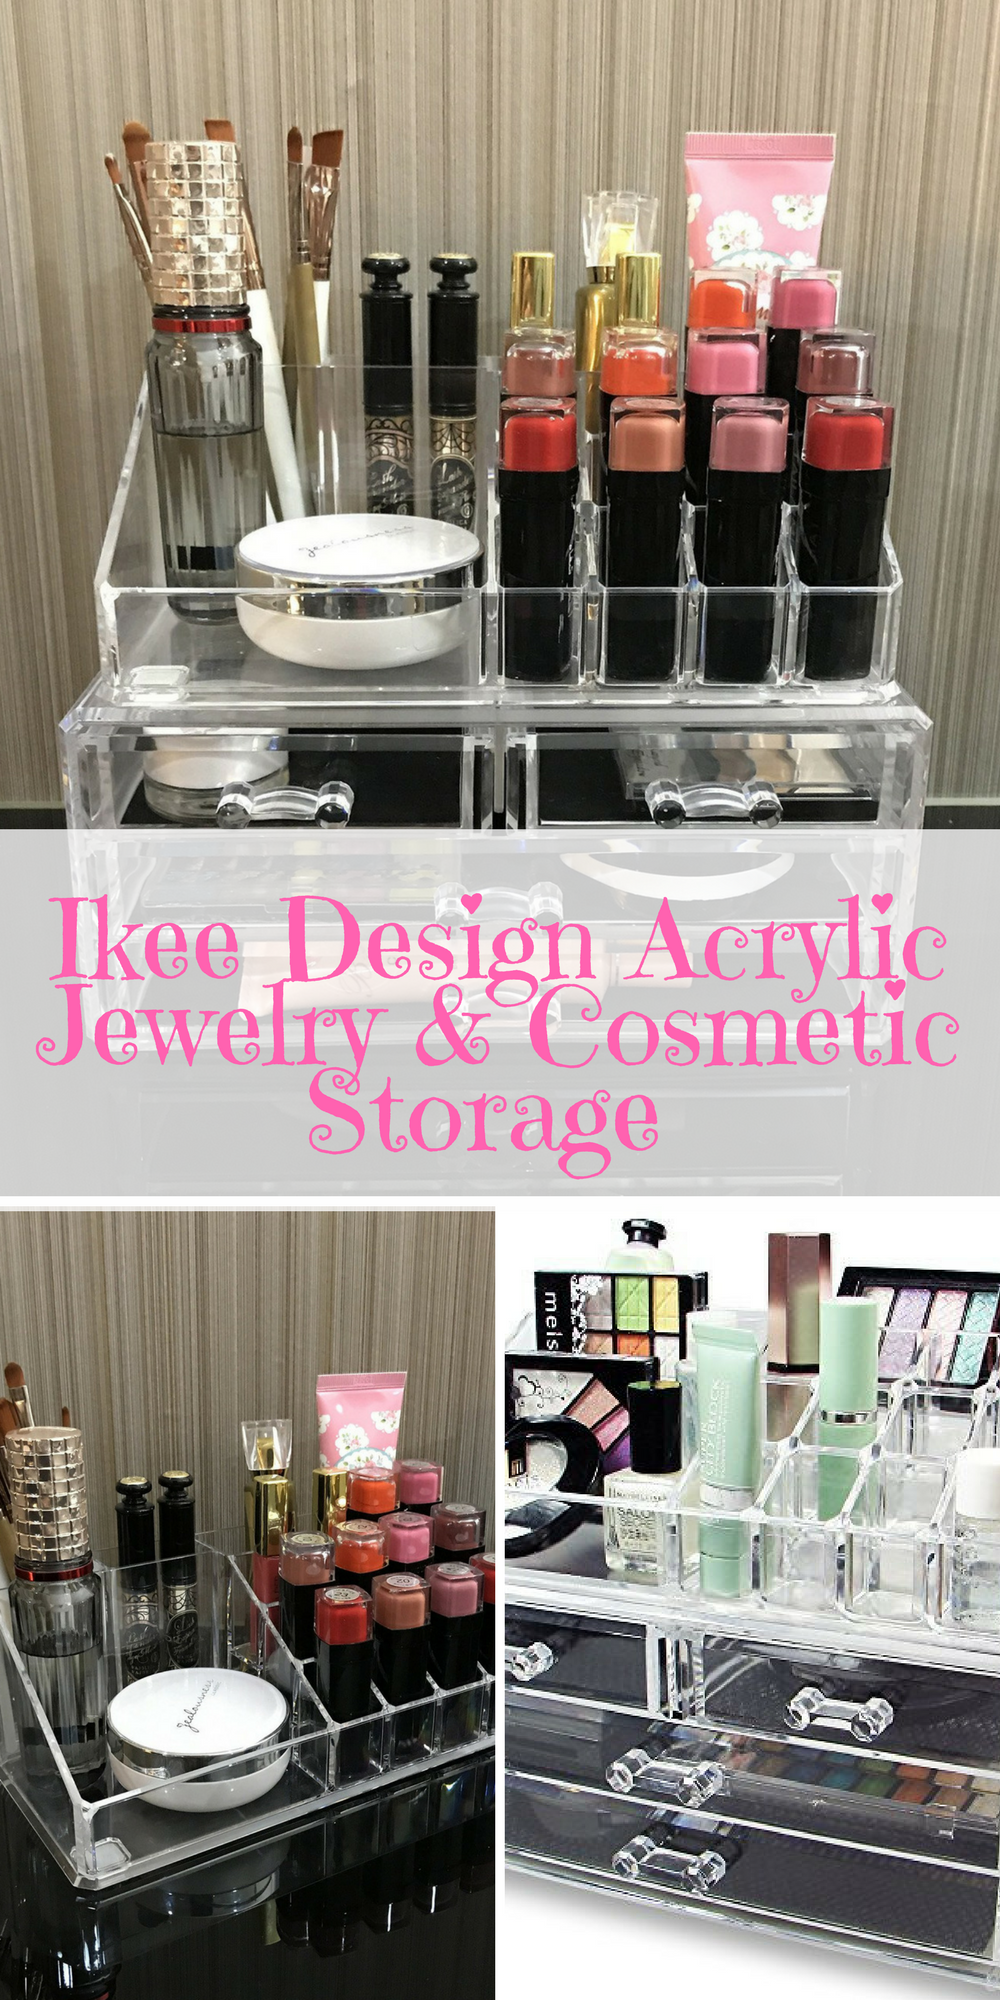 Ikee Design Acrylic Jewelry Cosmetic Storage Stores And Organizes All Jewelry And Cosmetics In One Place Ama Diy Beauty Hacks Beauty Hacks Diy Skin Care